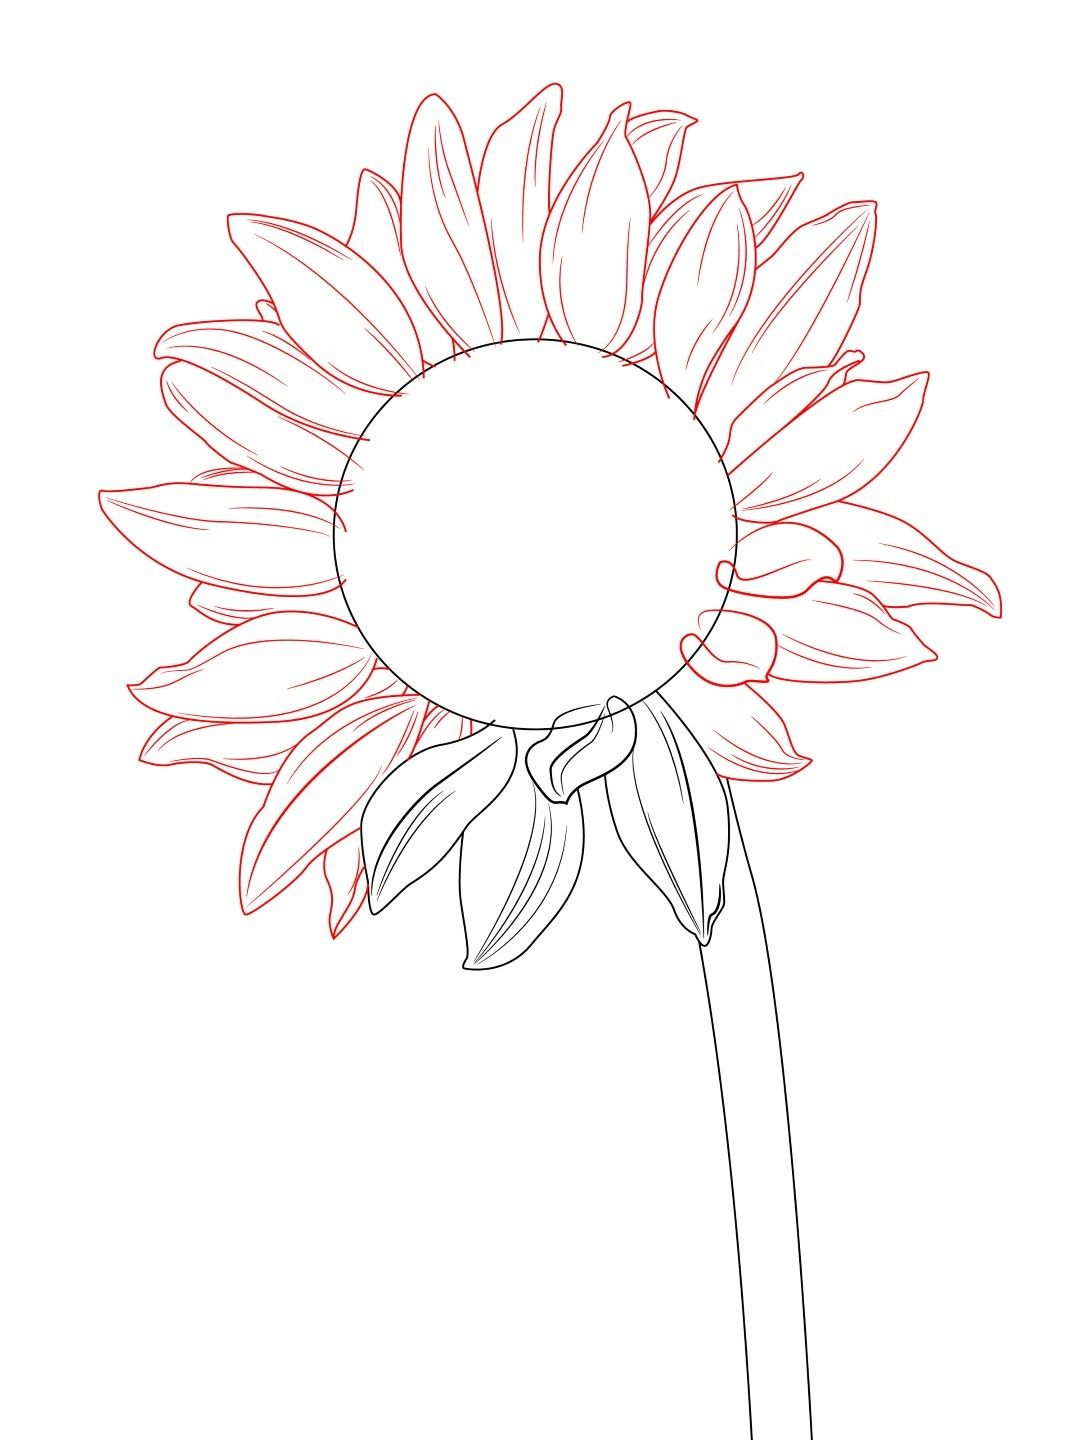 How To Draw A Sunflower | Art | Sunflower drawing ...